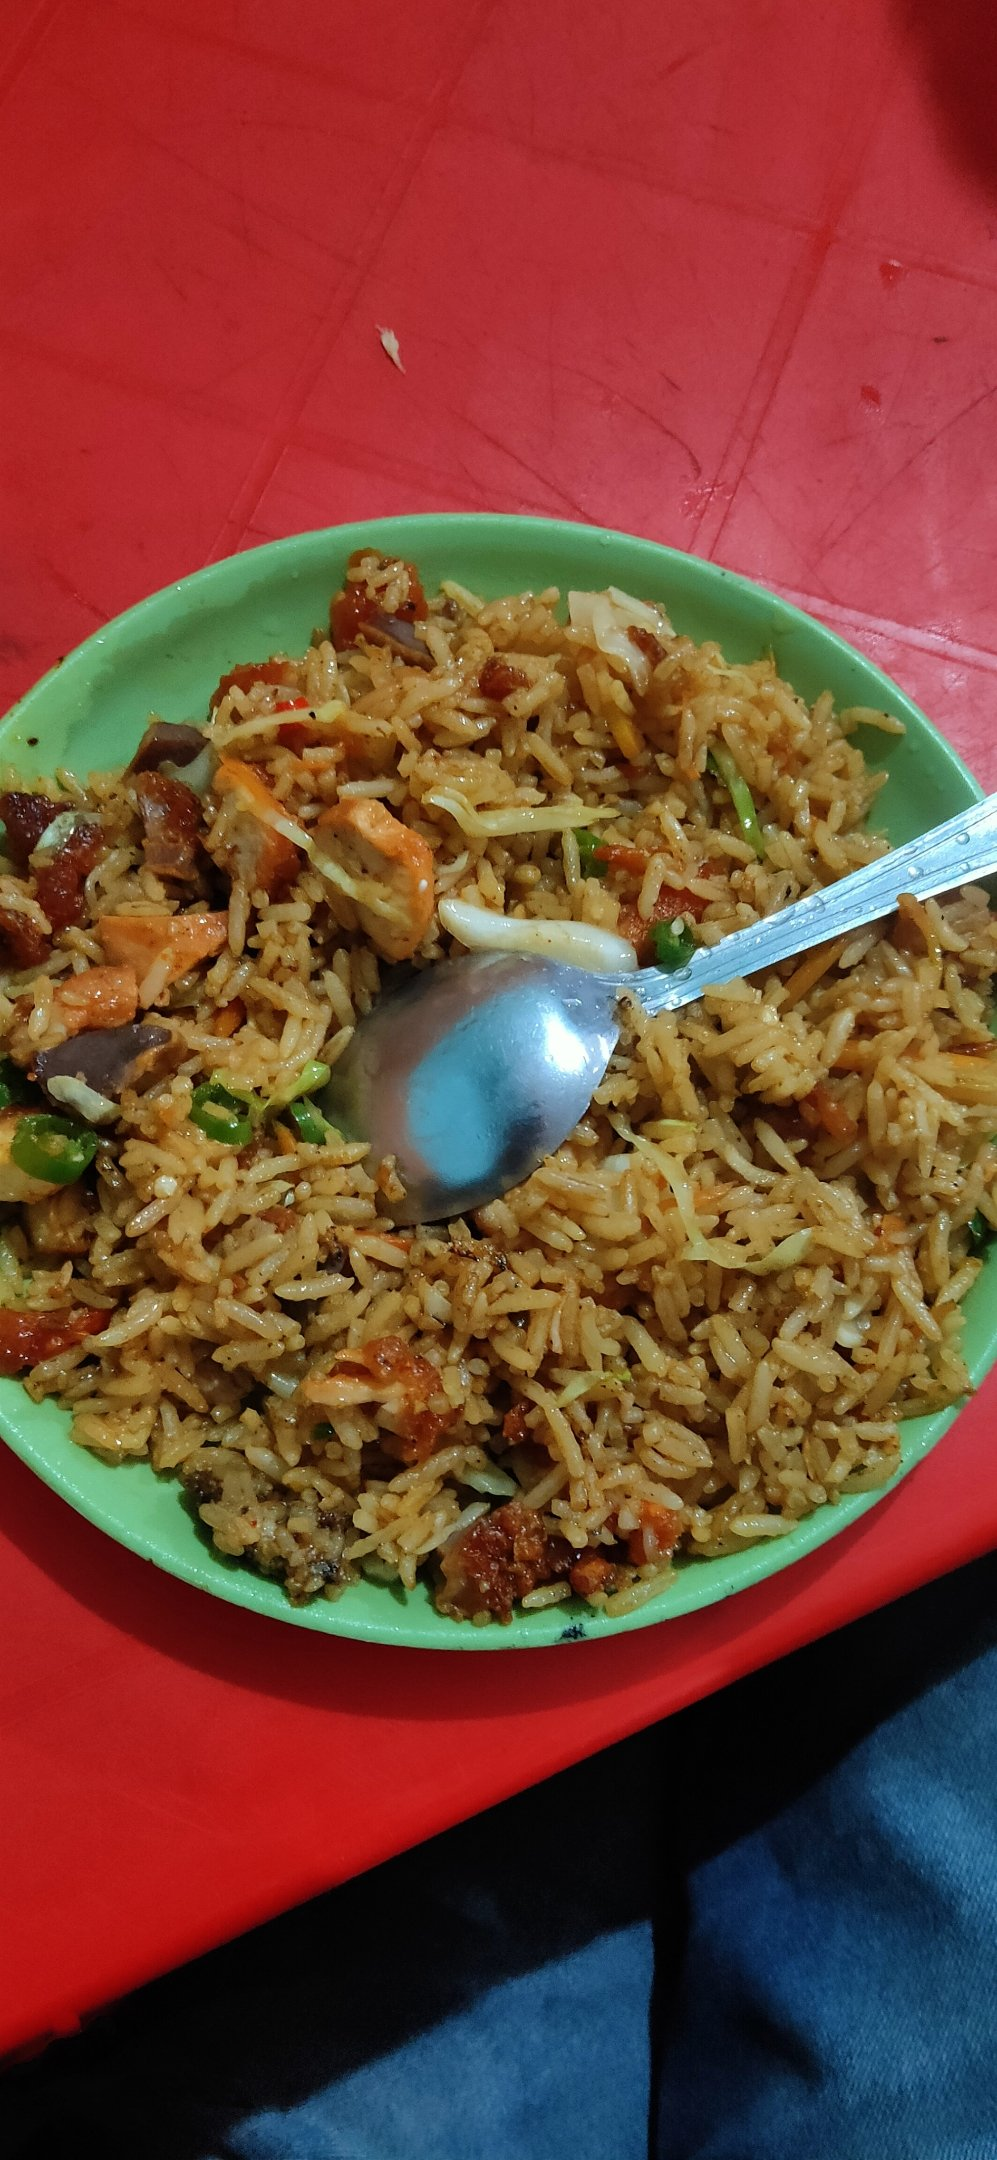 Fried rice in a plate